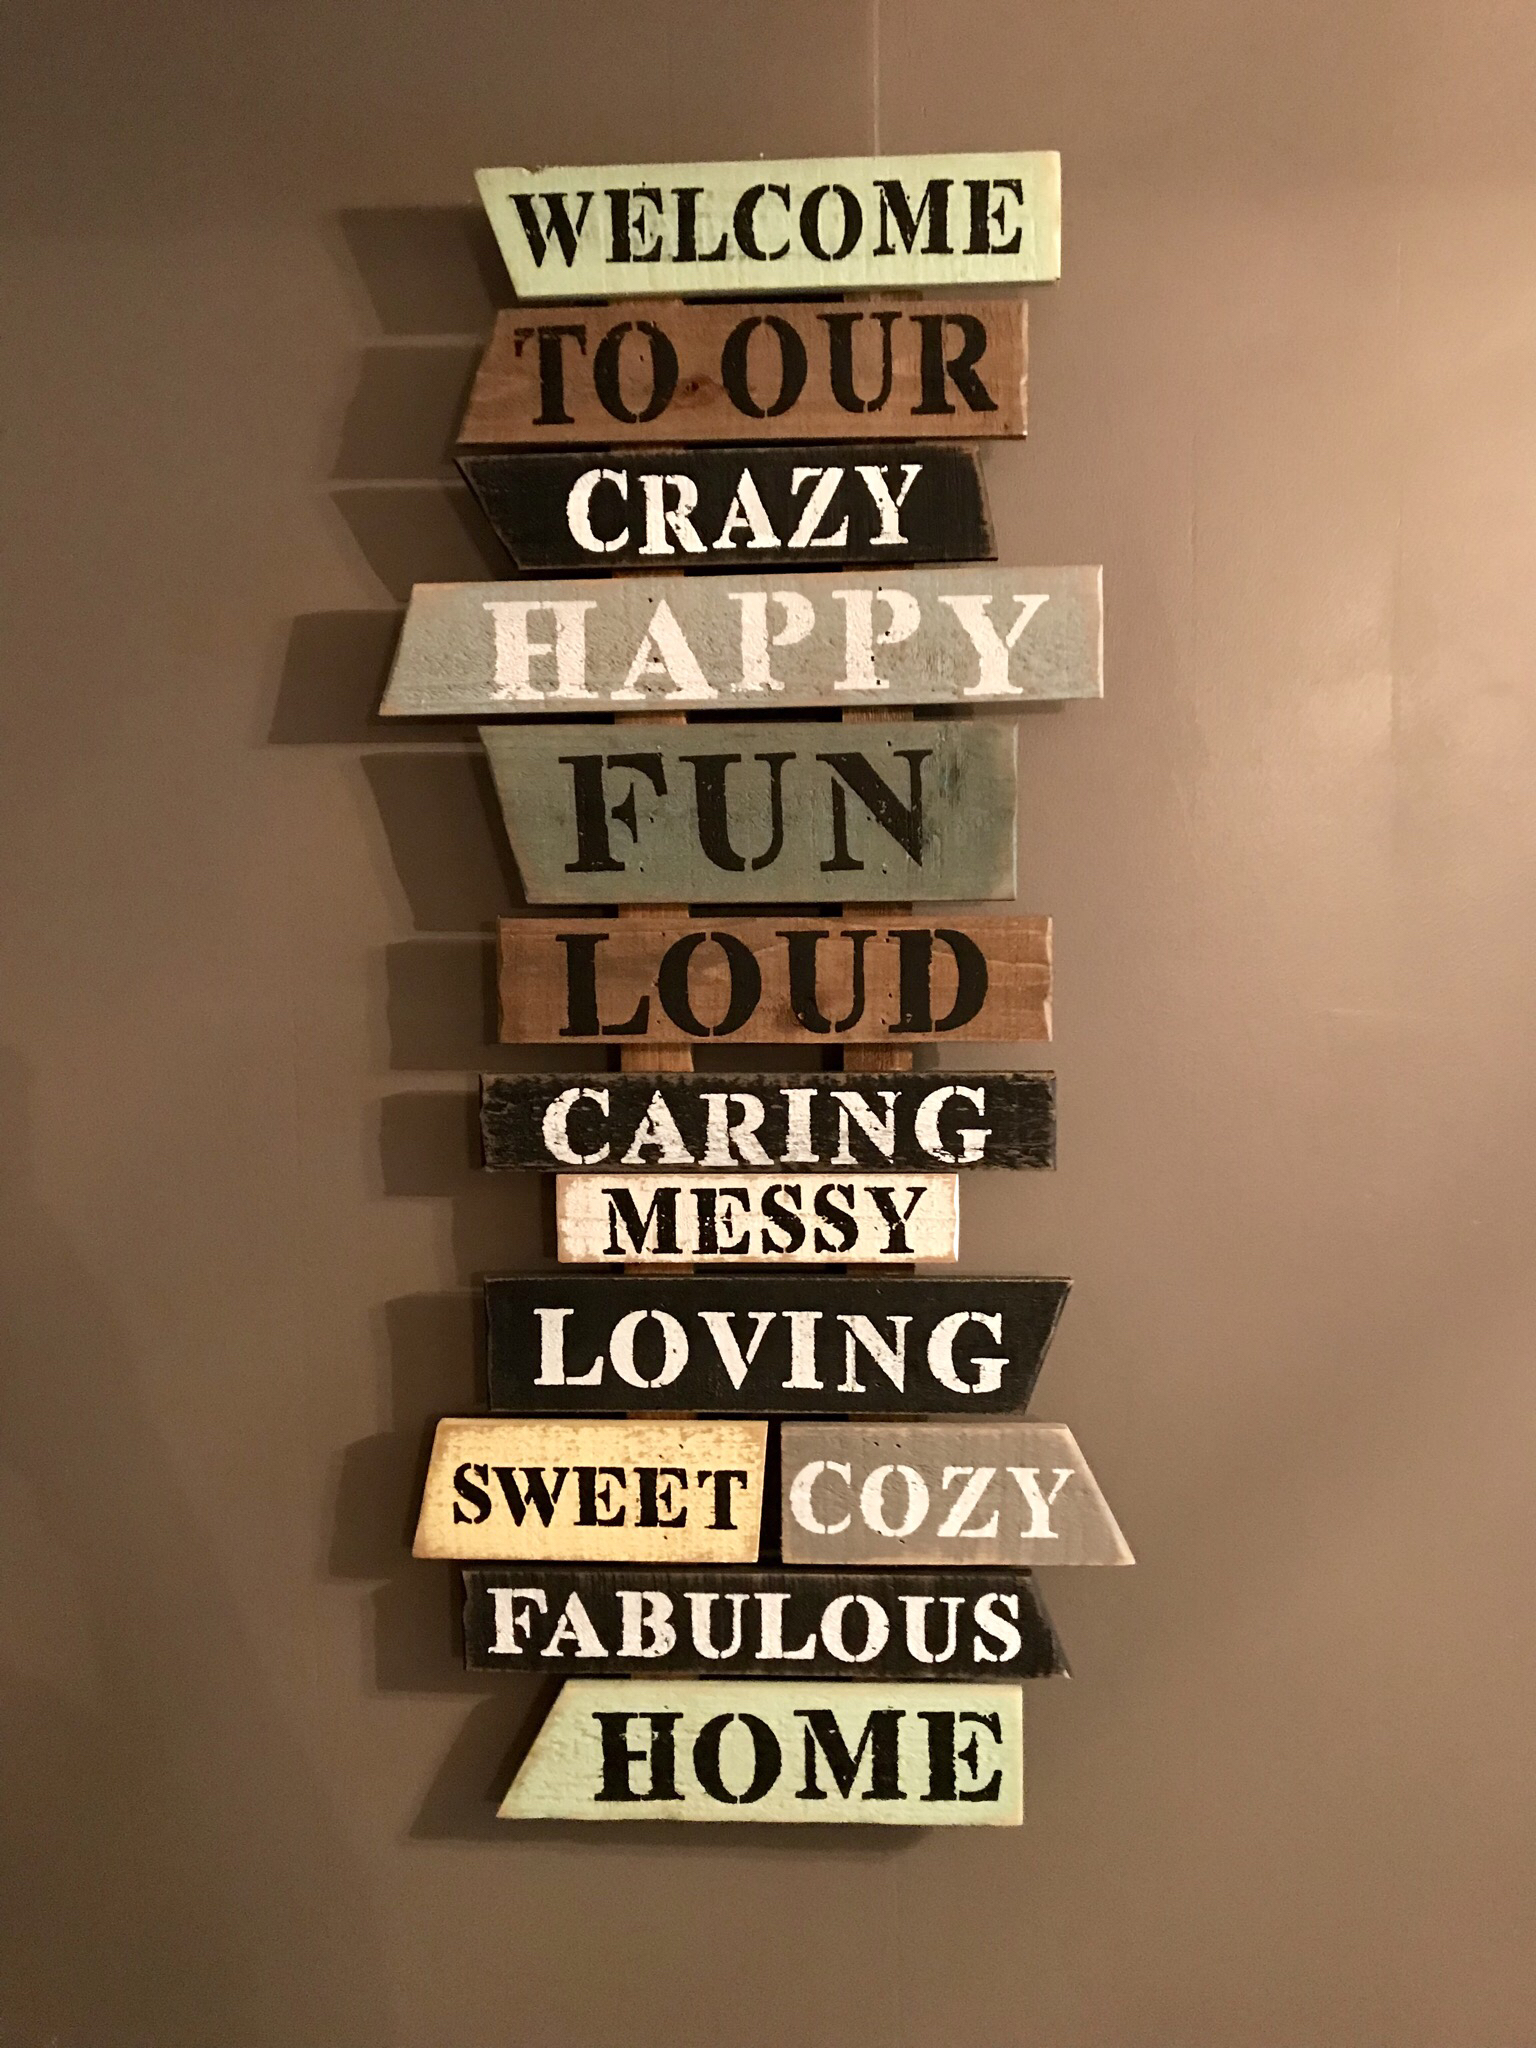 8 welcome to our crazy happy fun loud home.jpg